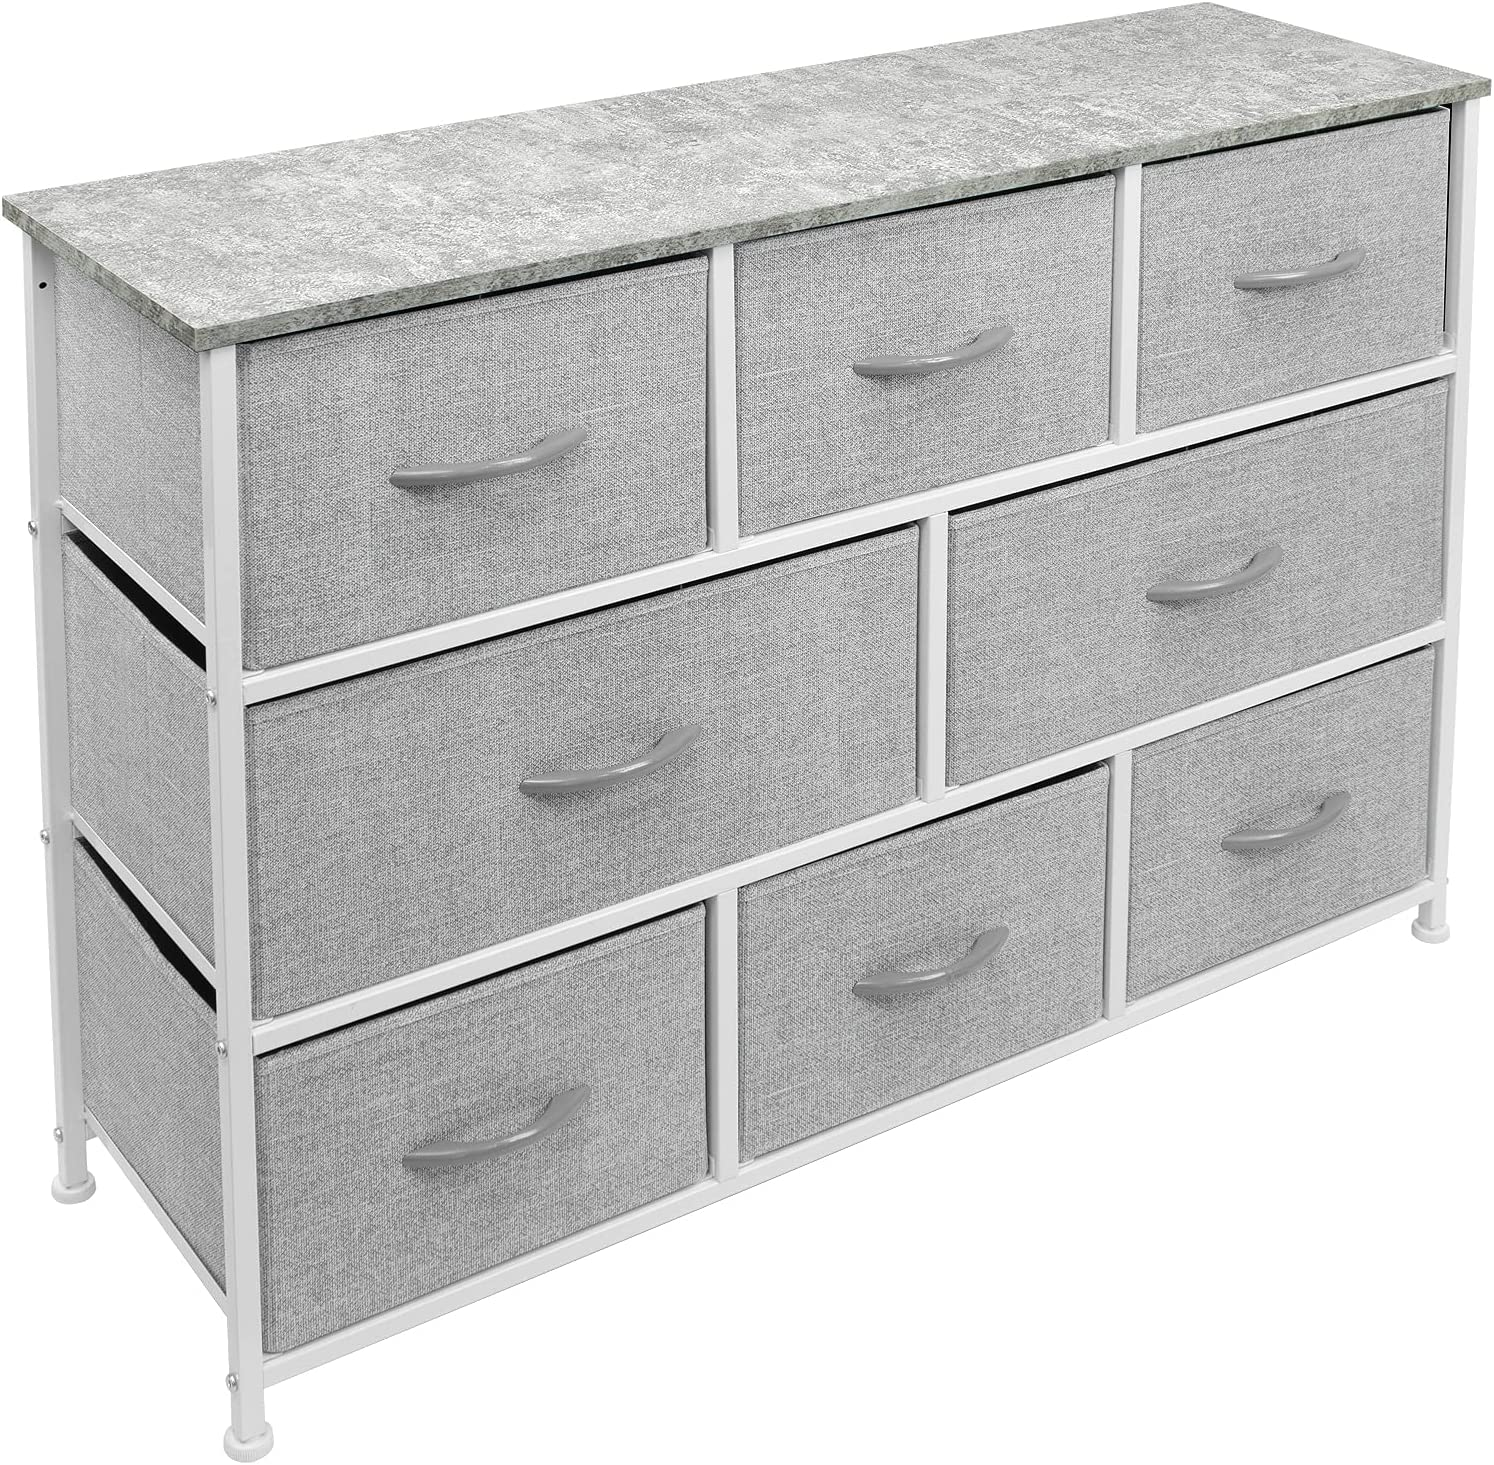 Sorbus Dresser with 8 Drawers - Furniture Storage Chest Tower Unit for Bedroom, Hallway, Closet, Office Organization - Steel Iron Frame, Rustic Farmhouse Wood Top, Fabric Bins (Gray)